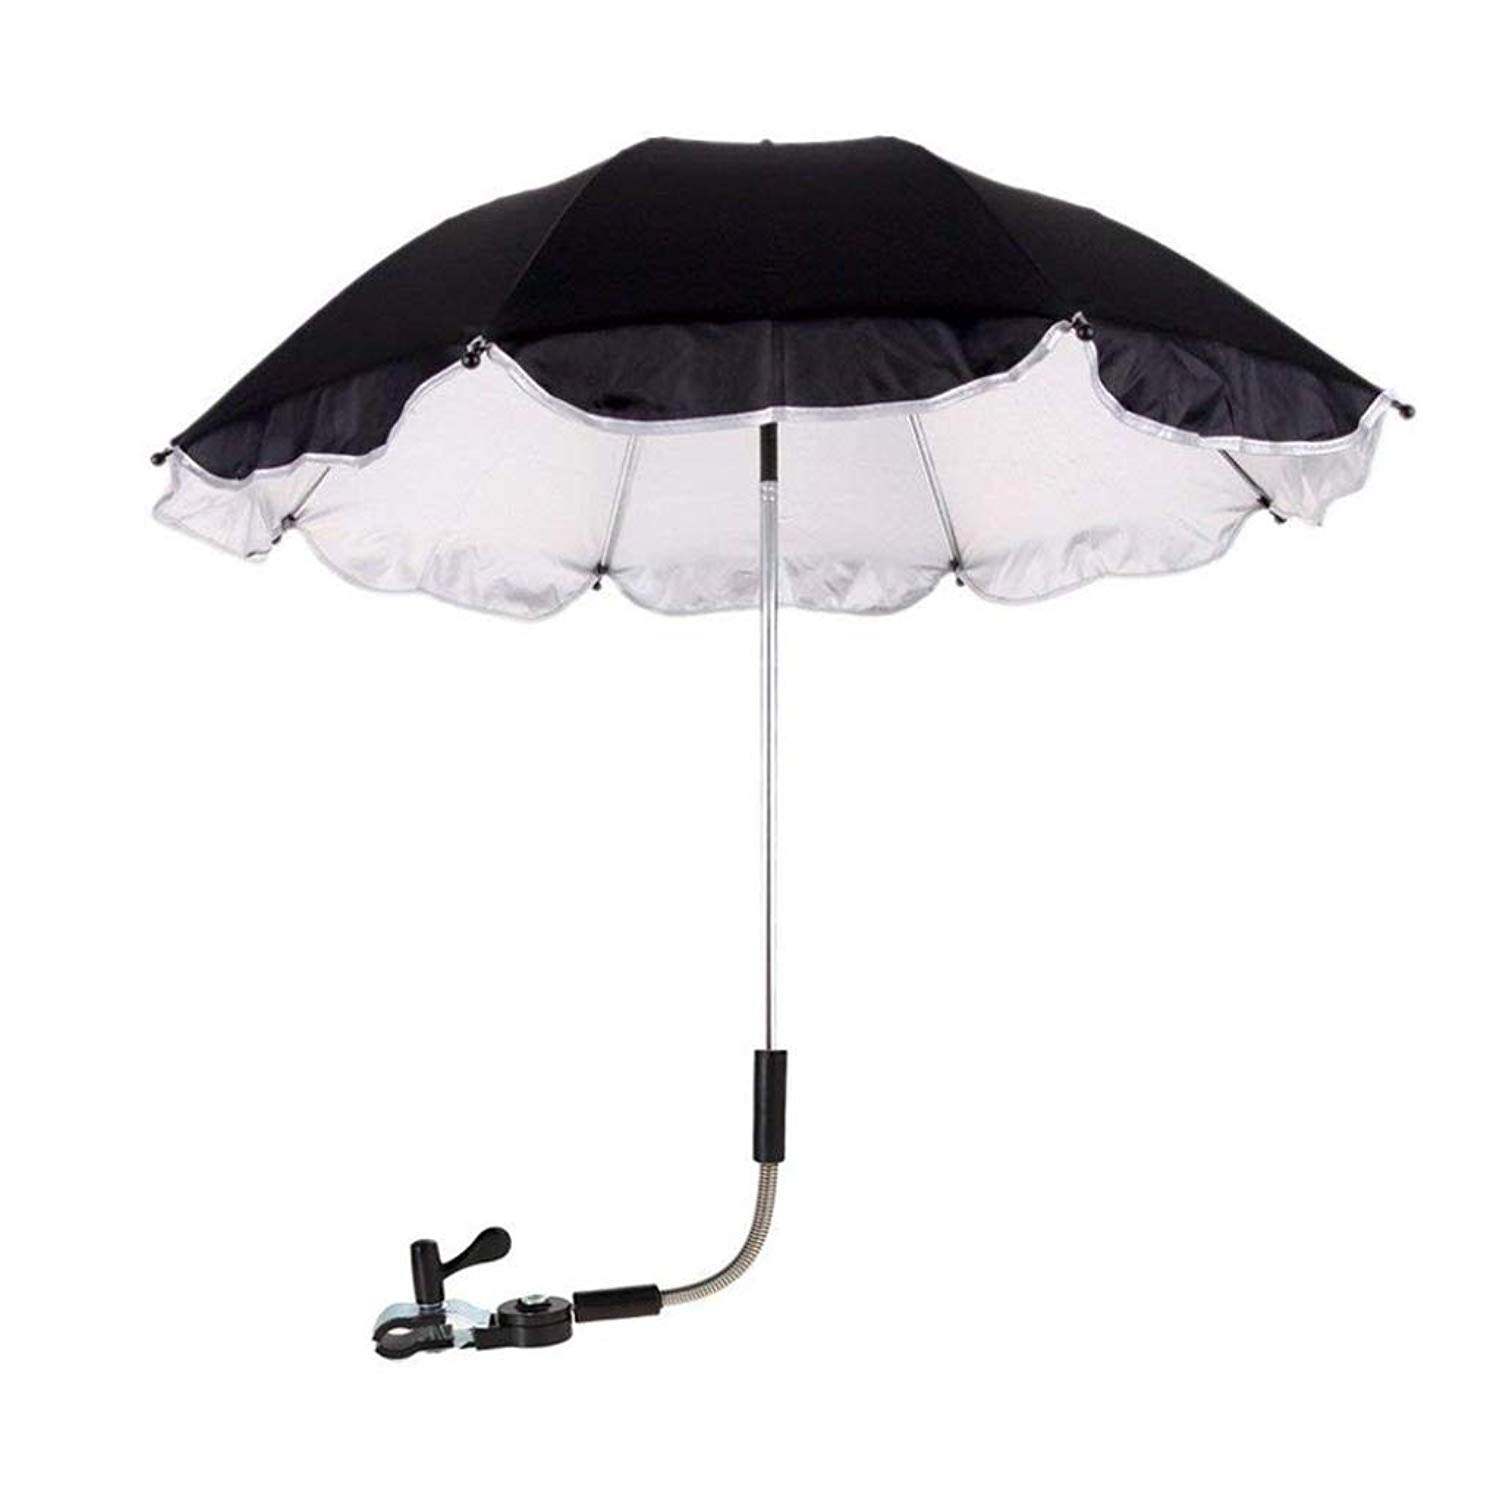 Vinjeely Baby Stroller Umbrella, Baby Parasol Cover for Sun Rain Protection UV Rays Outdoor